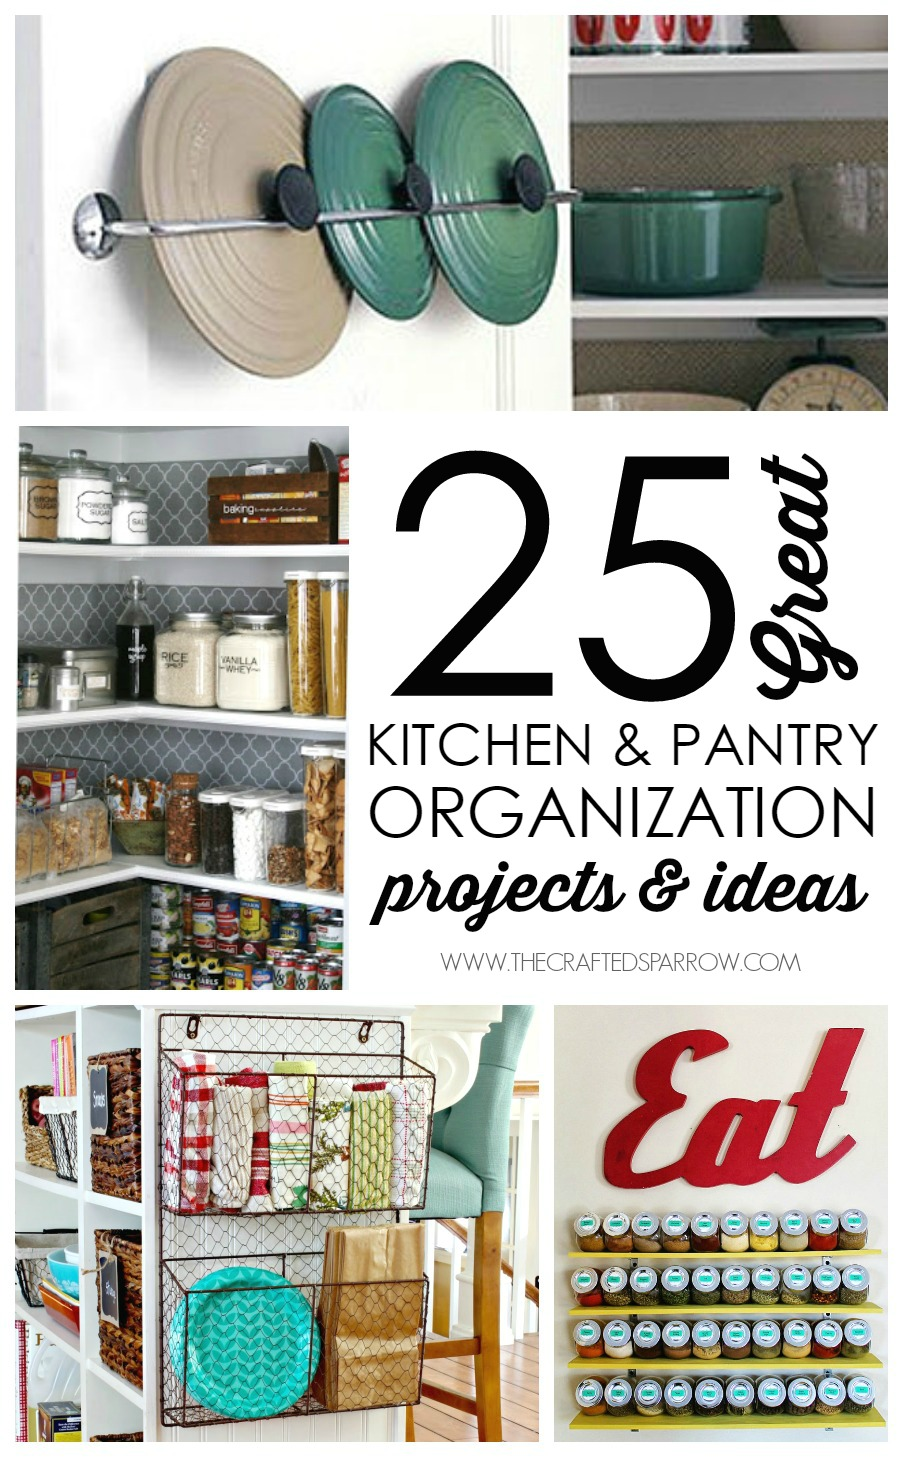 25 Kitchen and Pantry Organization & Ideas